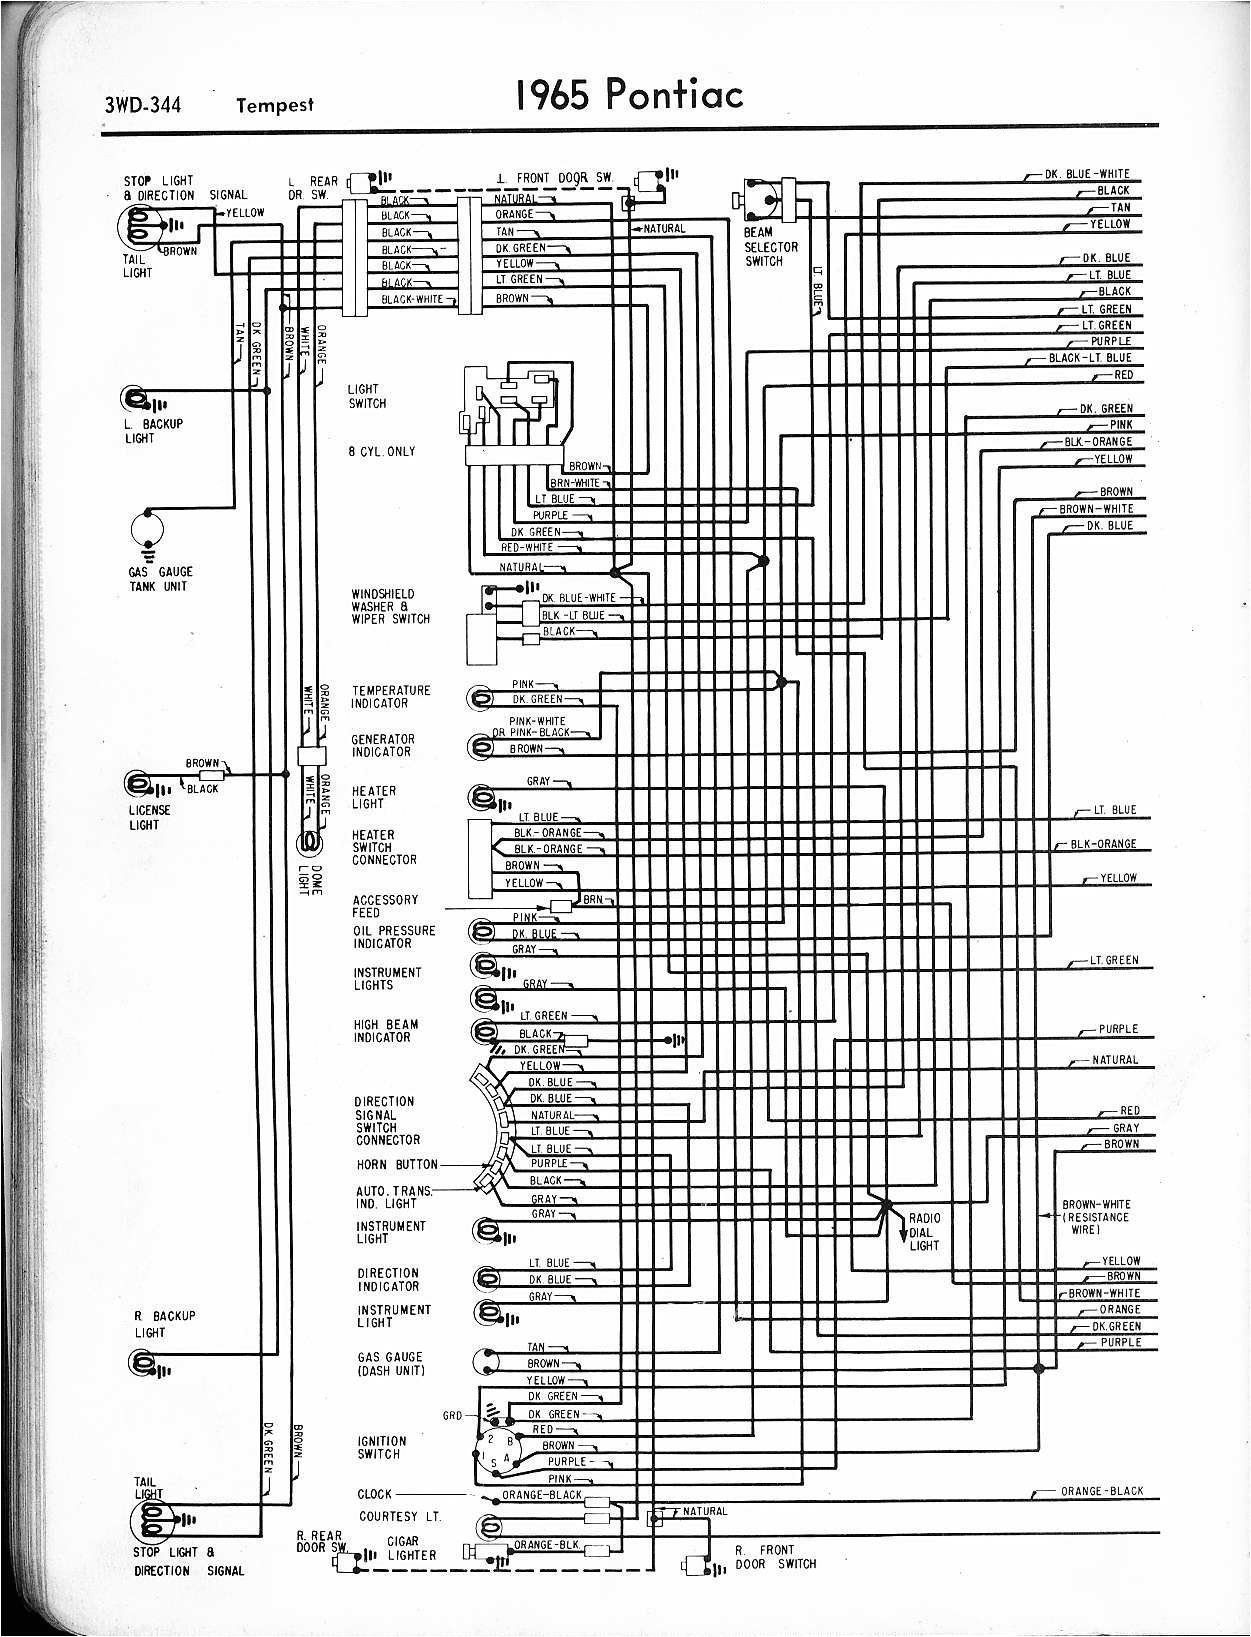 1968 cougar wiring diagram manual save 67 gto light wire of 1967